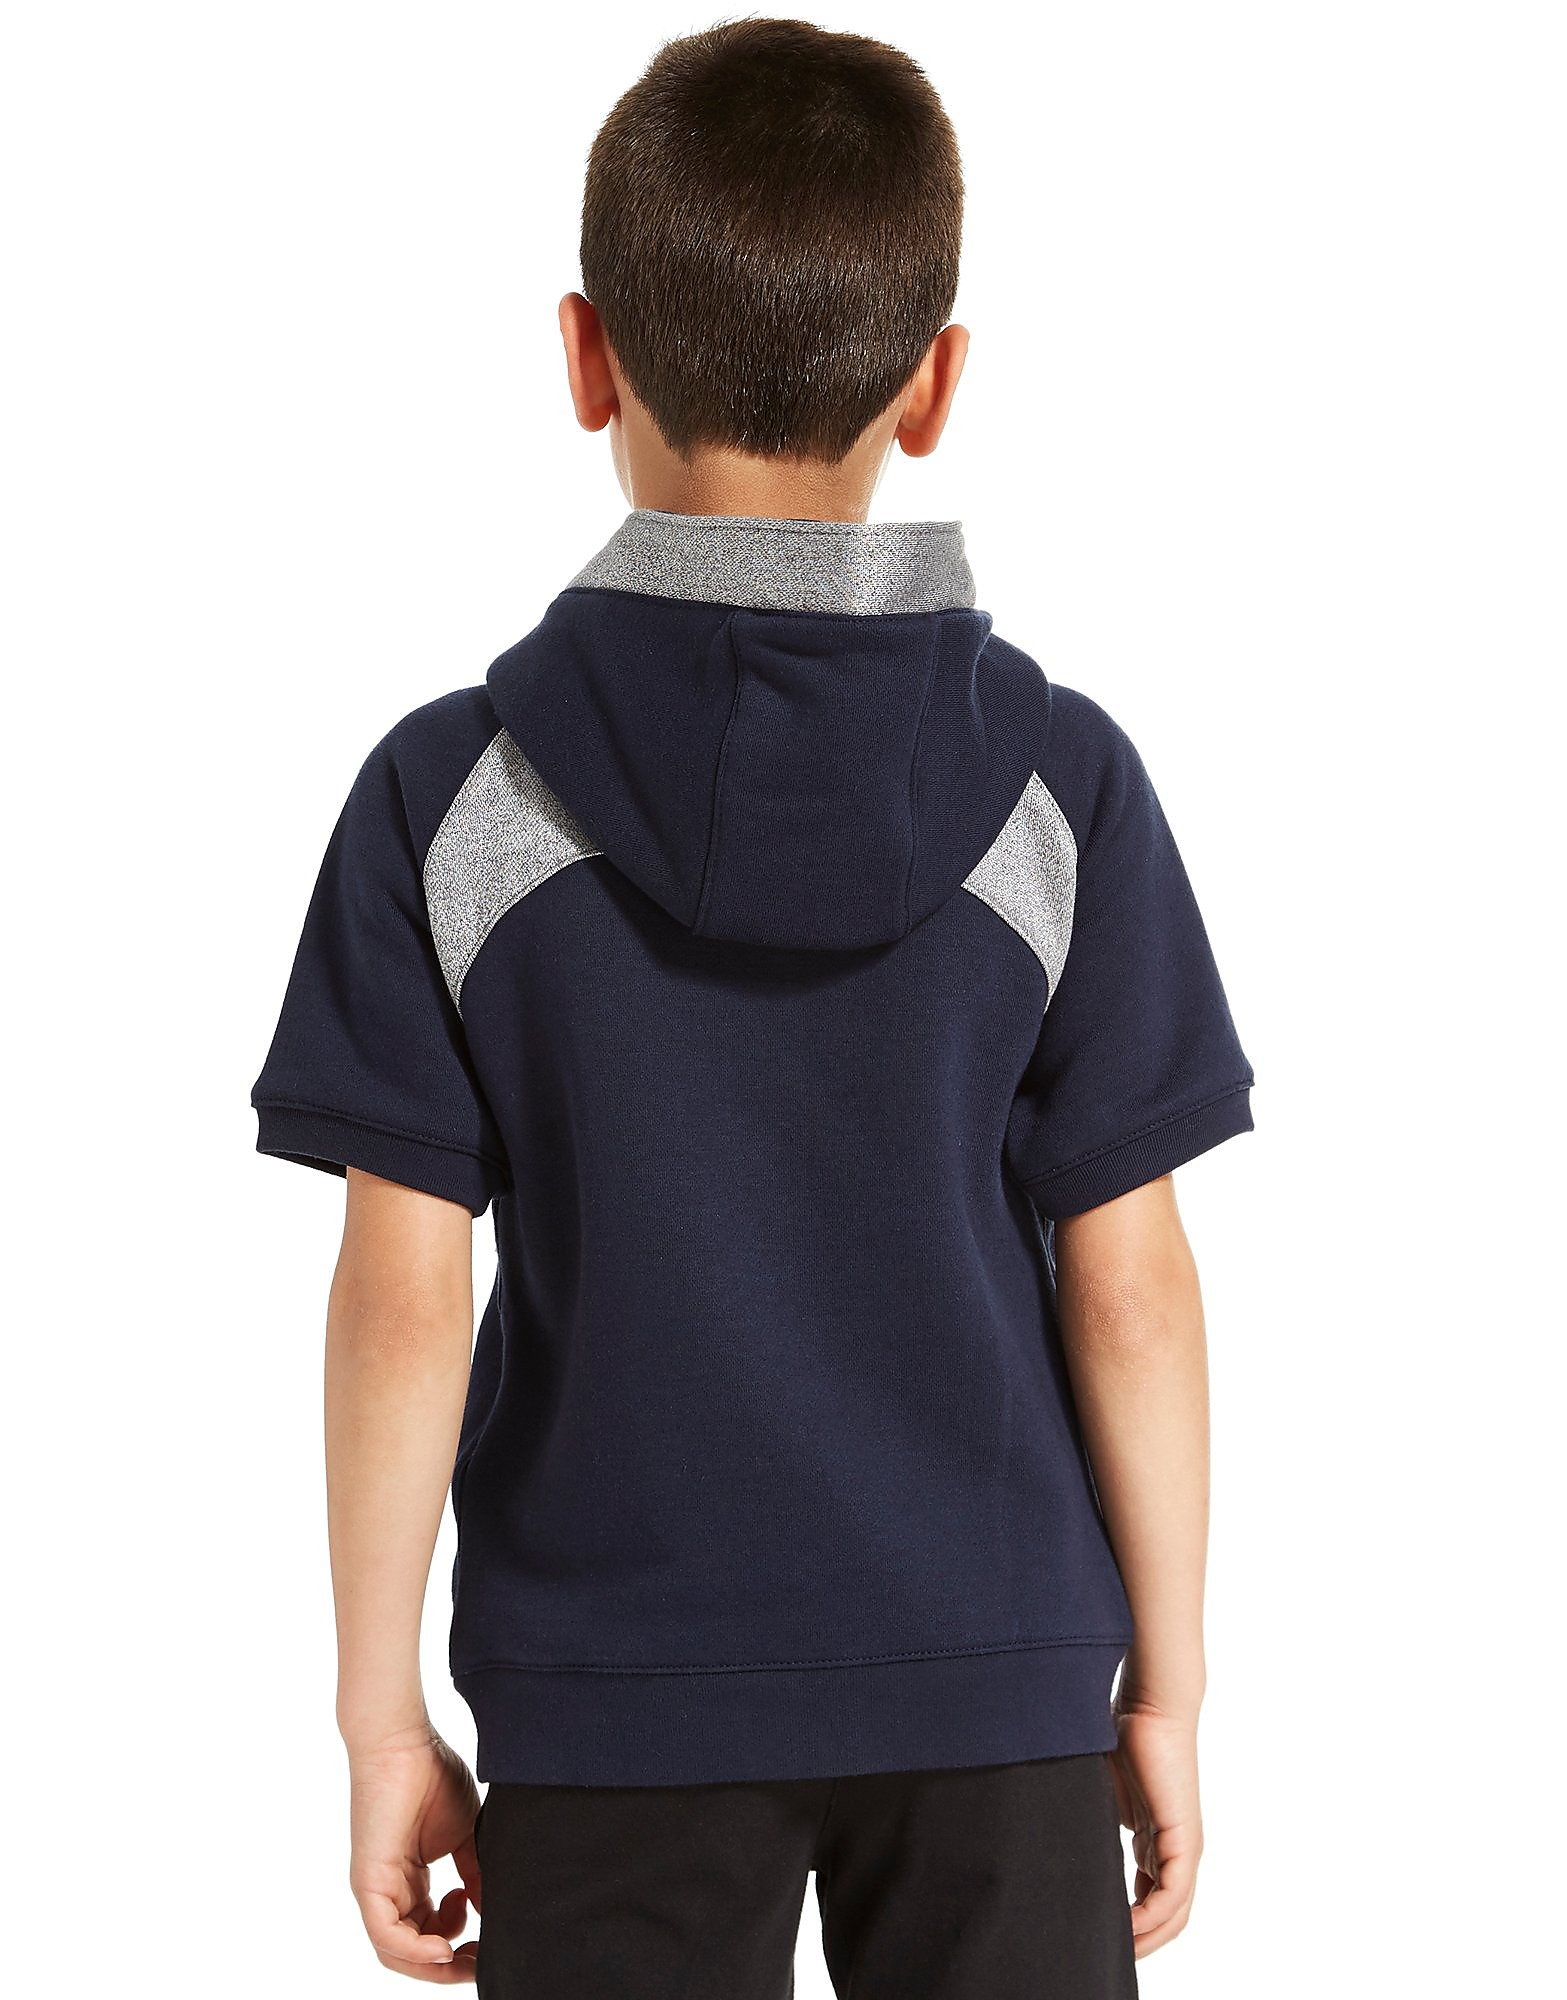 Nike Air Sleeveless Hoodie Children